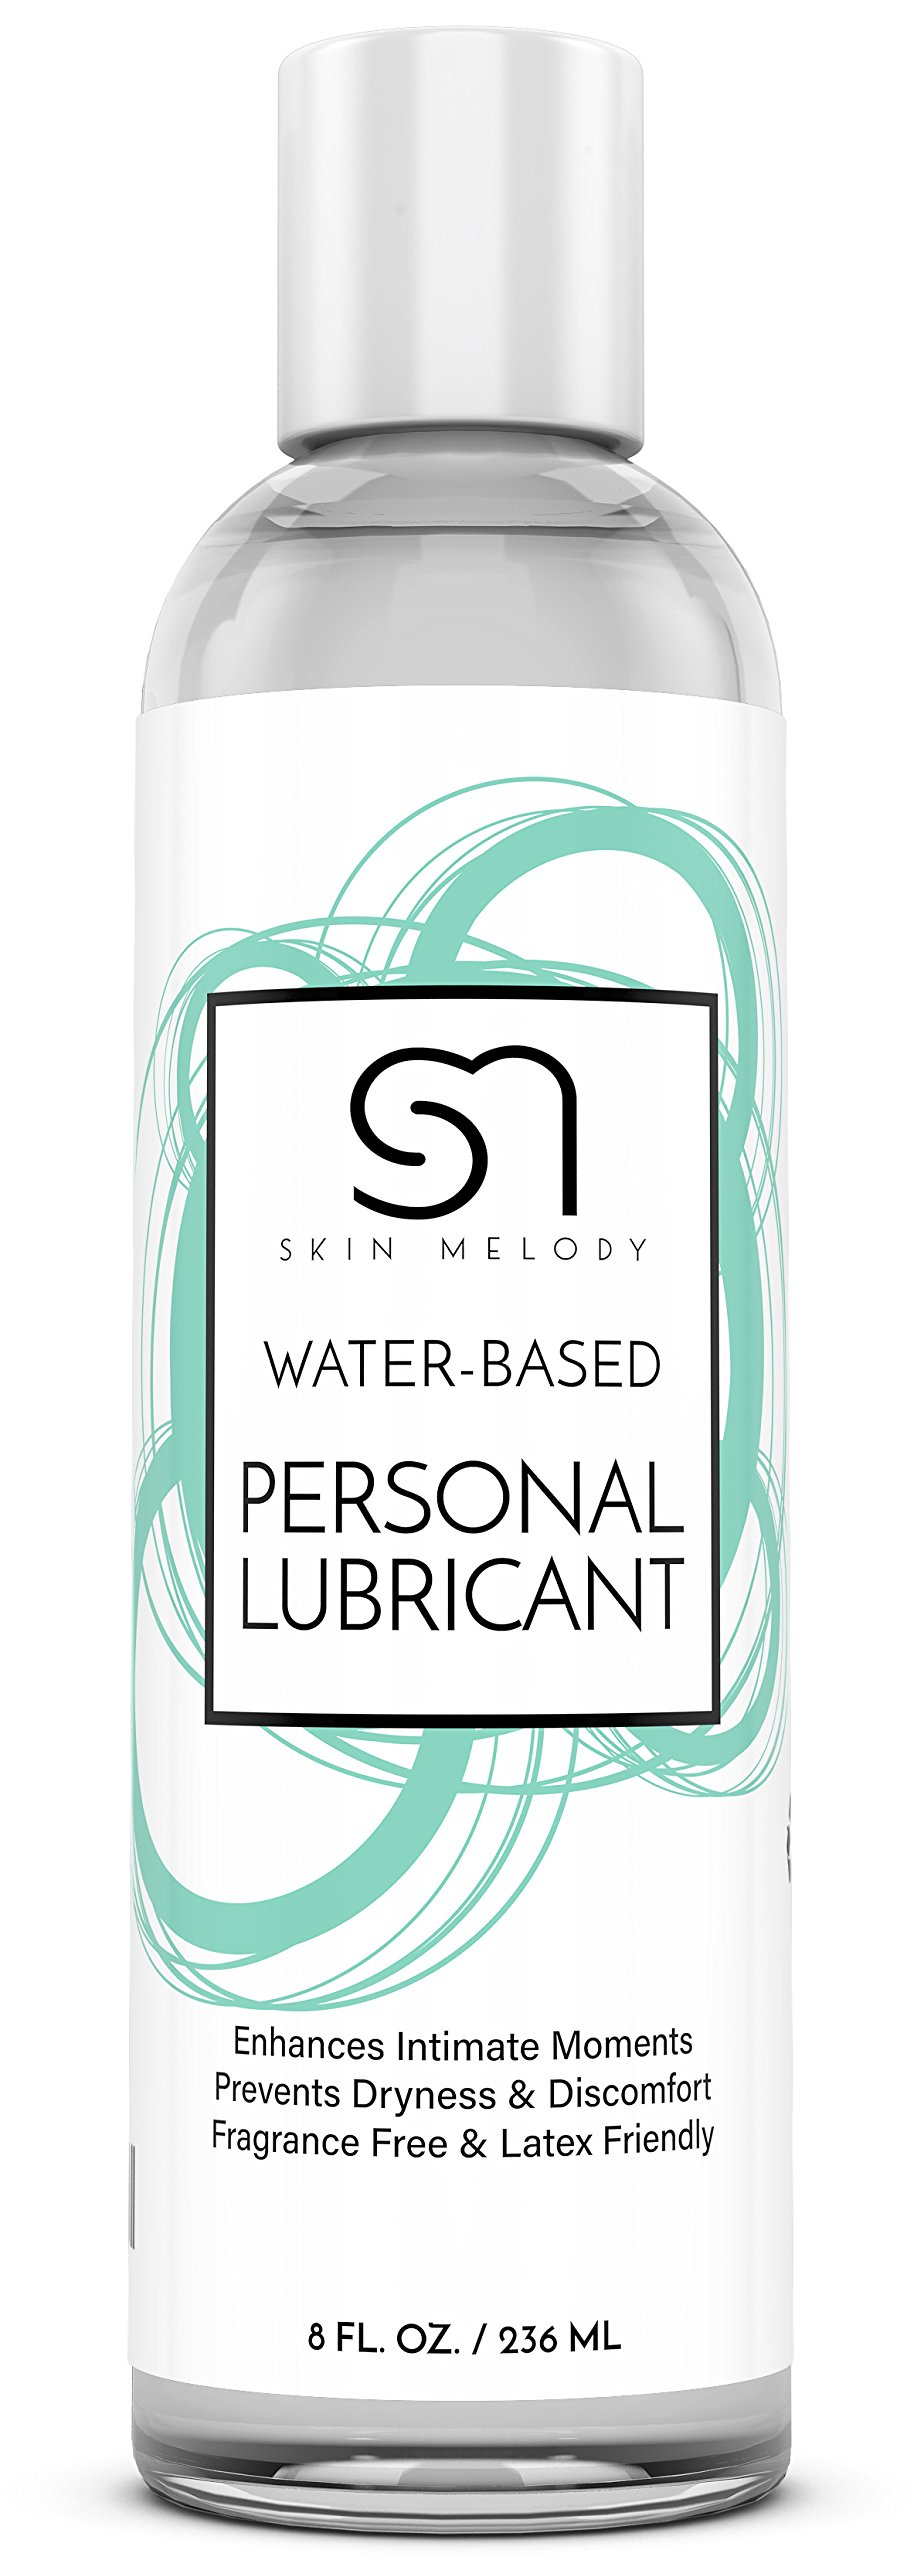 Personal Lubricant for Men & Women + Couples - Water Based Lube for Intimate Sensual Moments - Lubes Skin & Body for Silky Stimulation - Compatible with Silicone Toys & Great for Sensitive Skin - 8 OZ